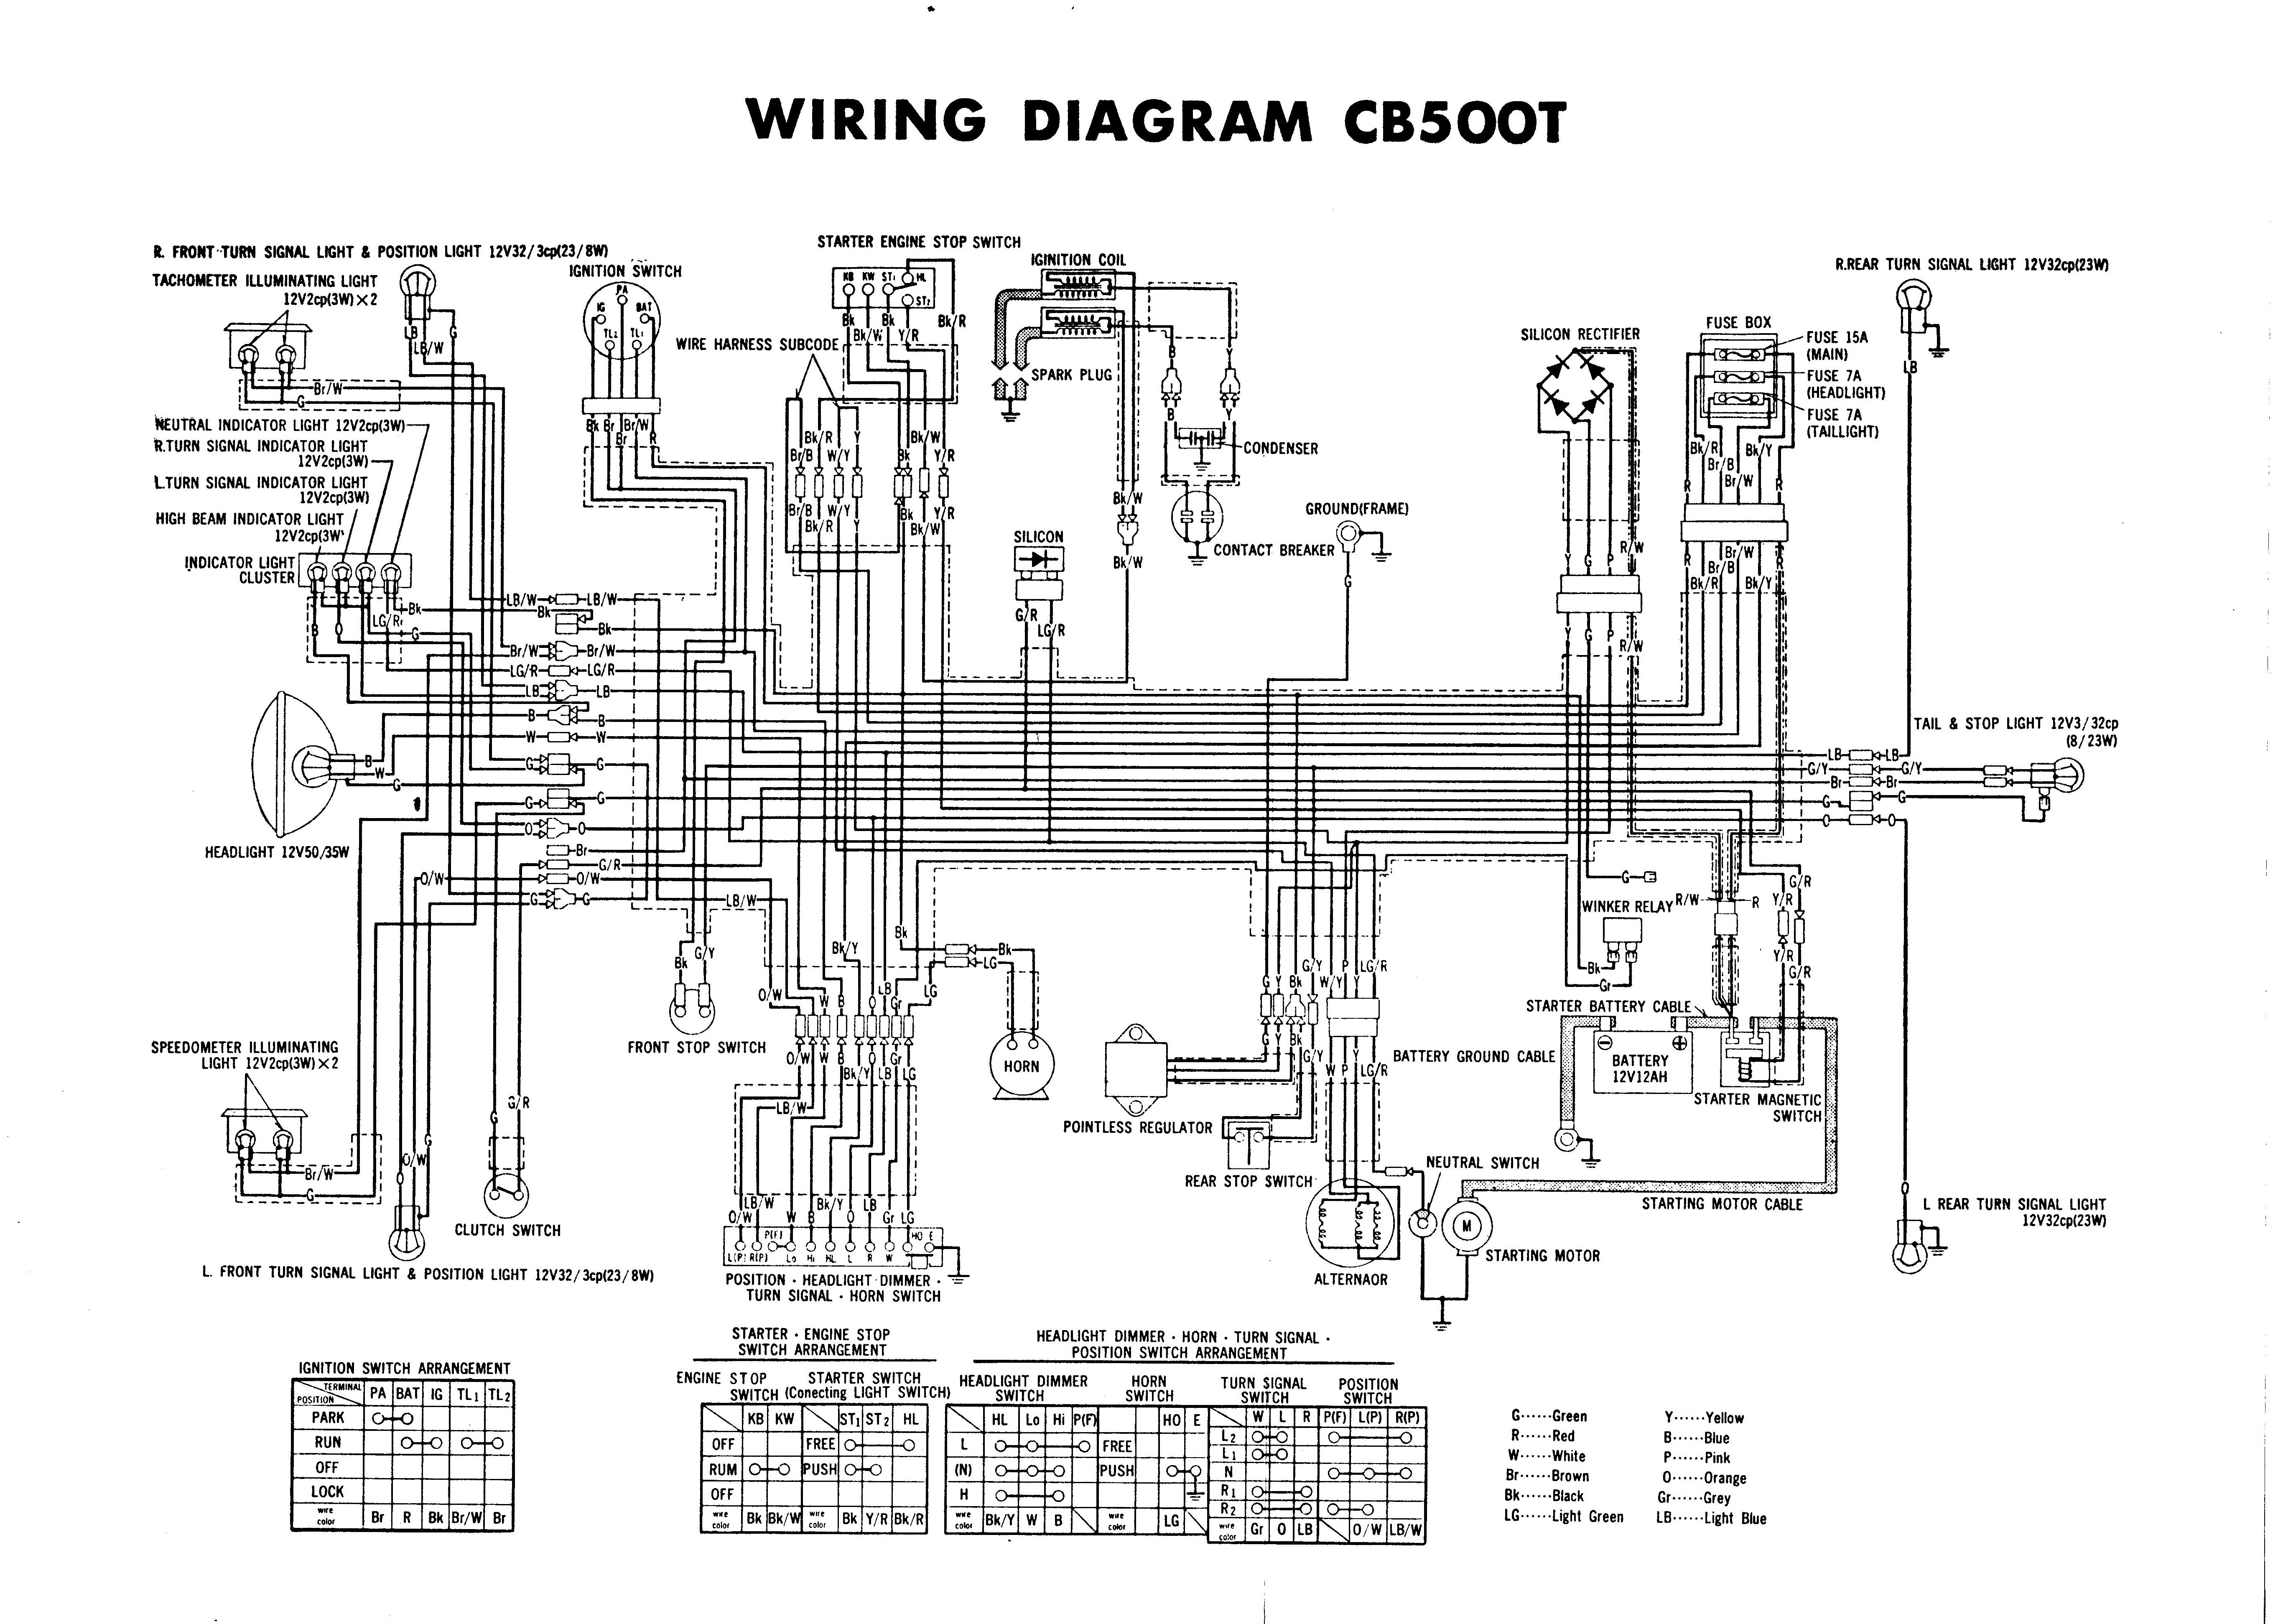 small resolution of cb500t wiring diagram wiring diagram world honda cb500t wiring diagram cb500t wiring diagram wiring diagram expert